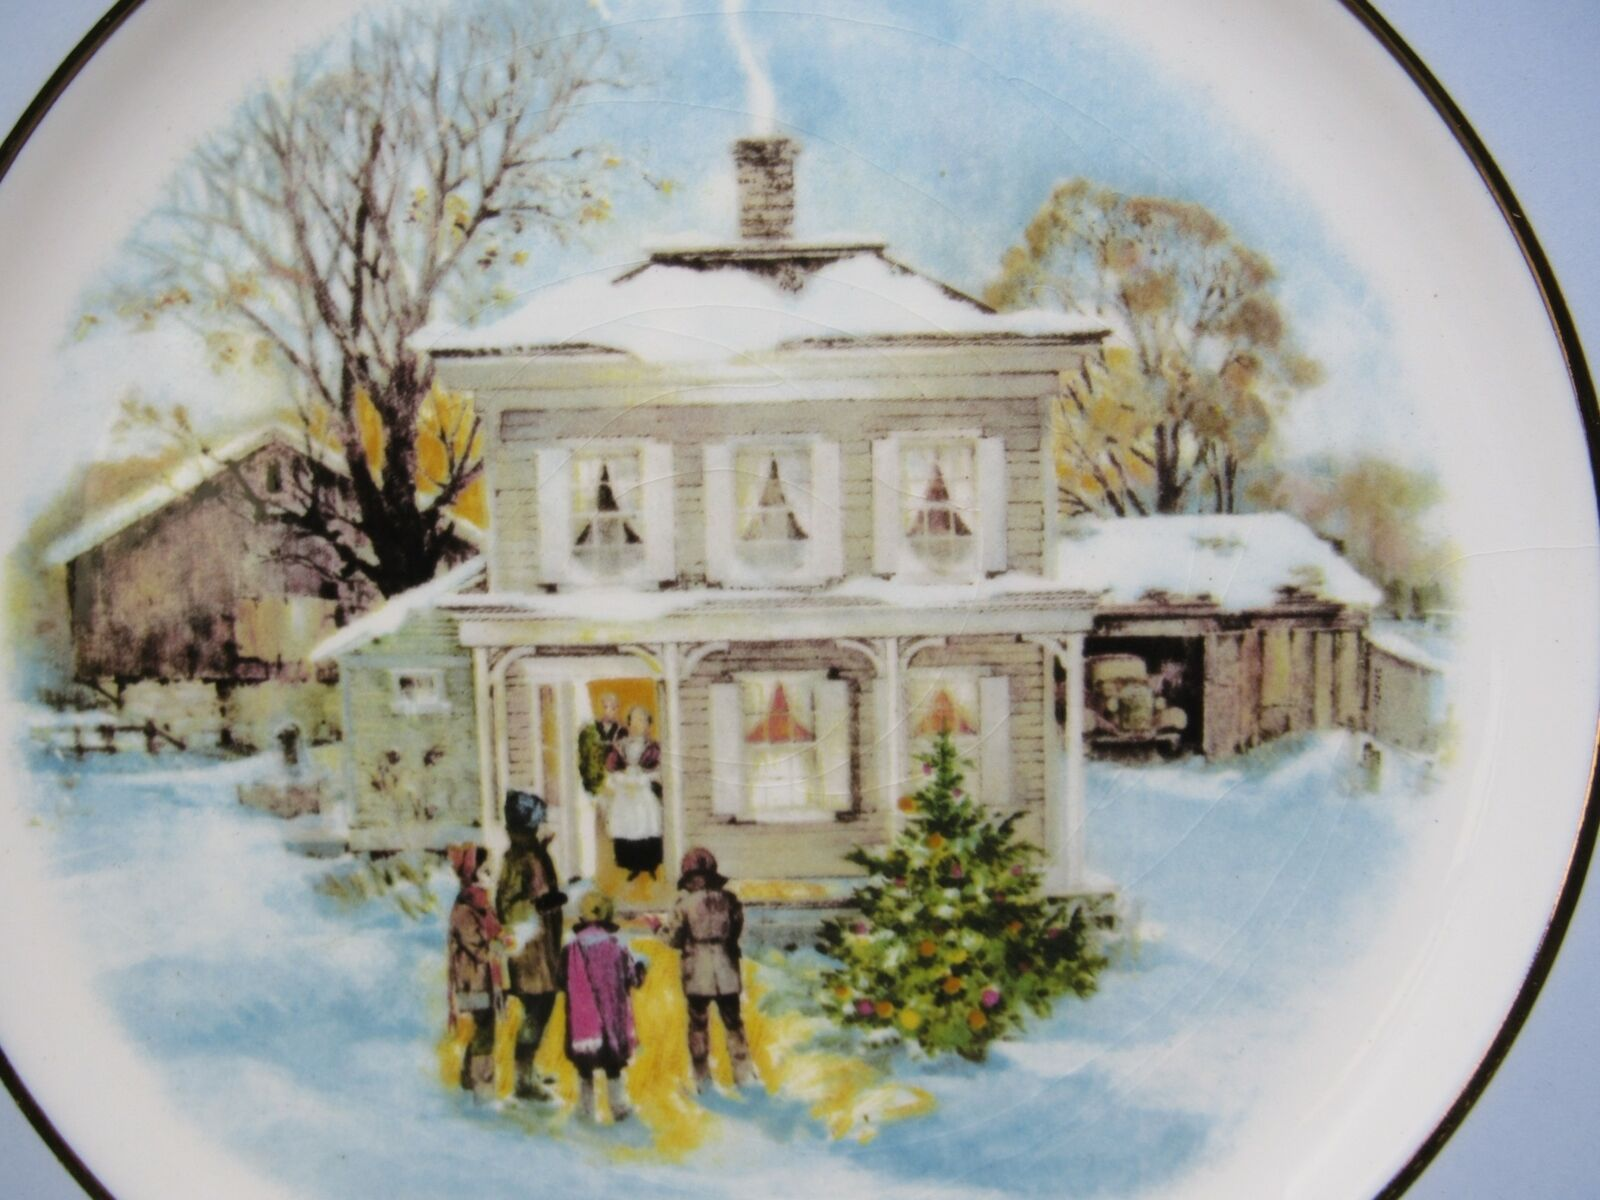 1977 Avon Christmas Plate Series Fifth Edition Carollers in the Snow in Box vtg image 3